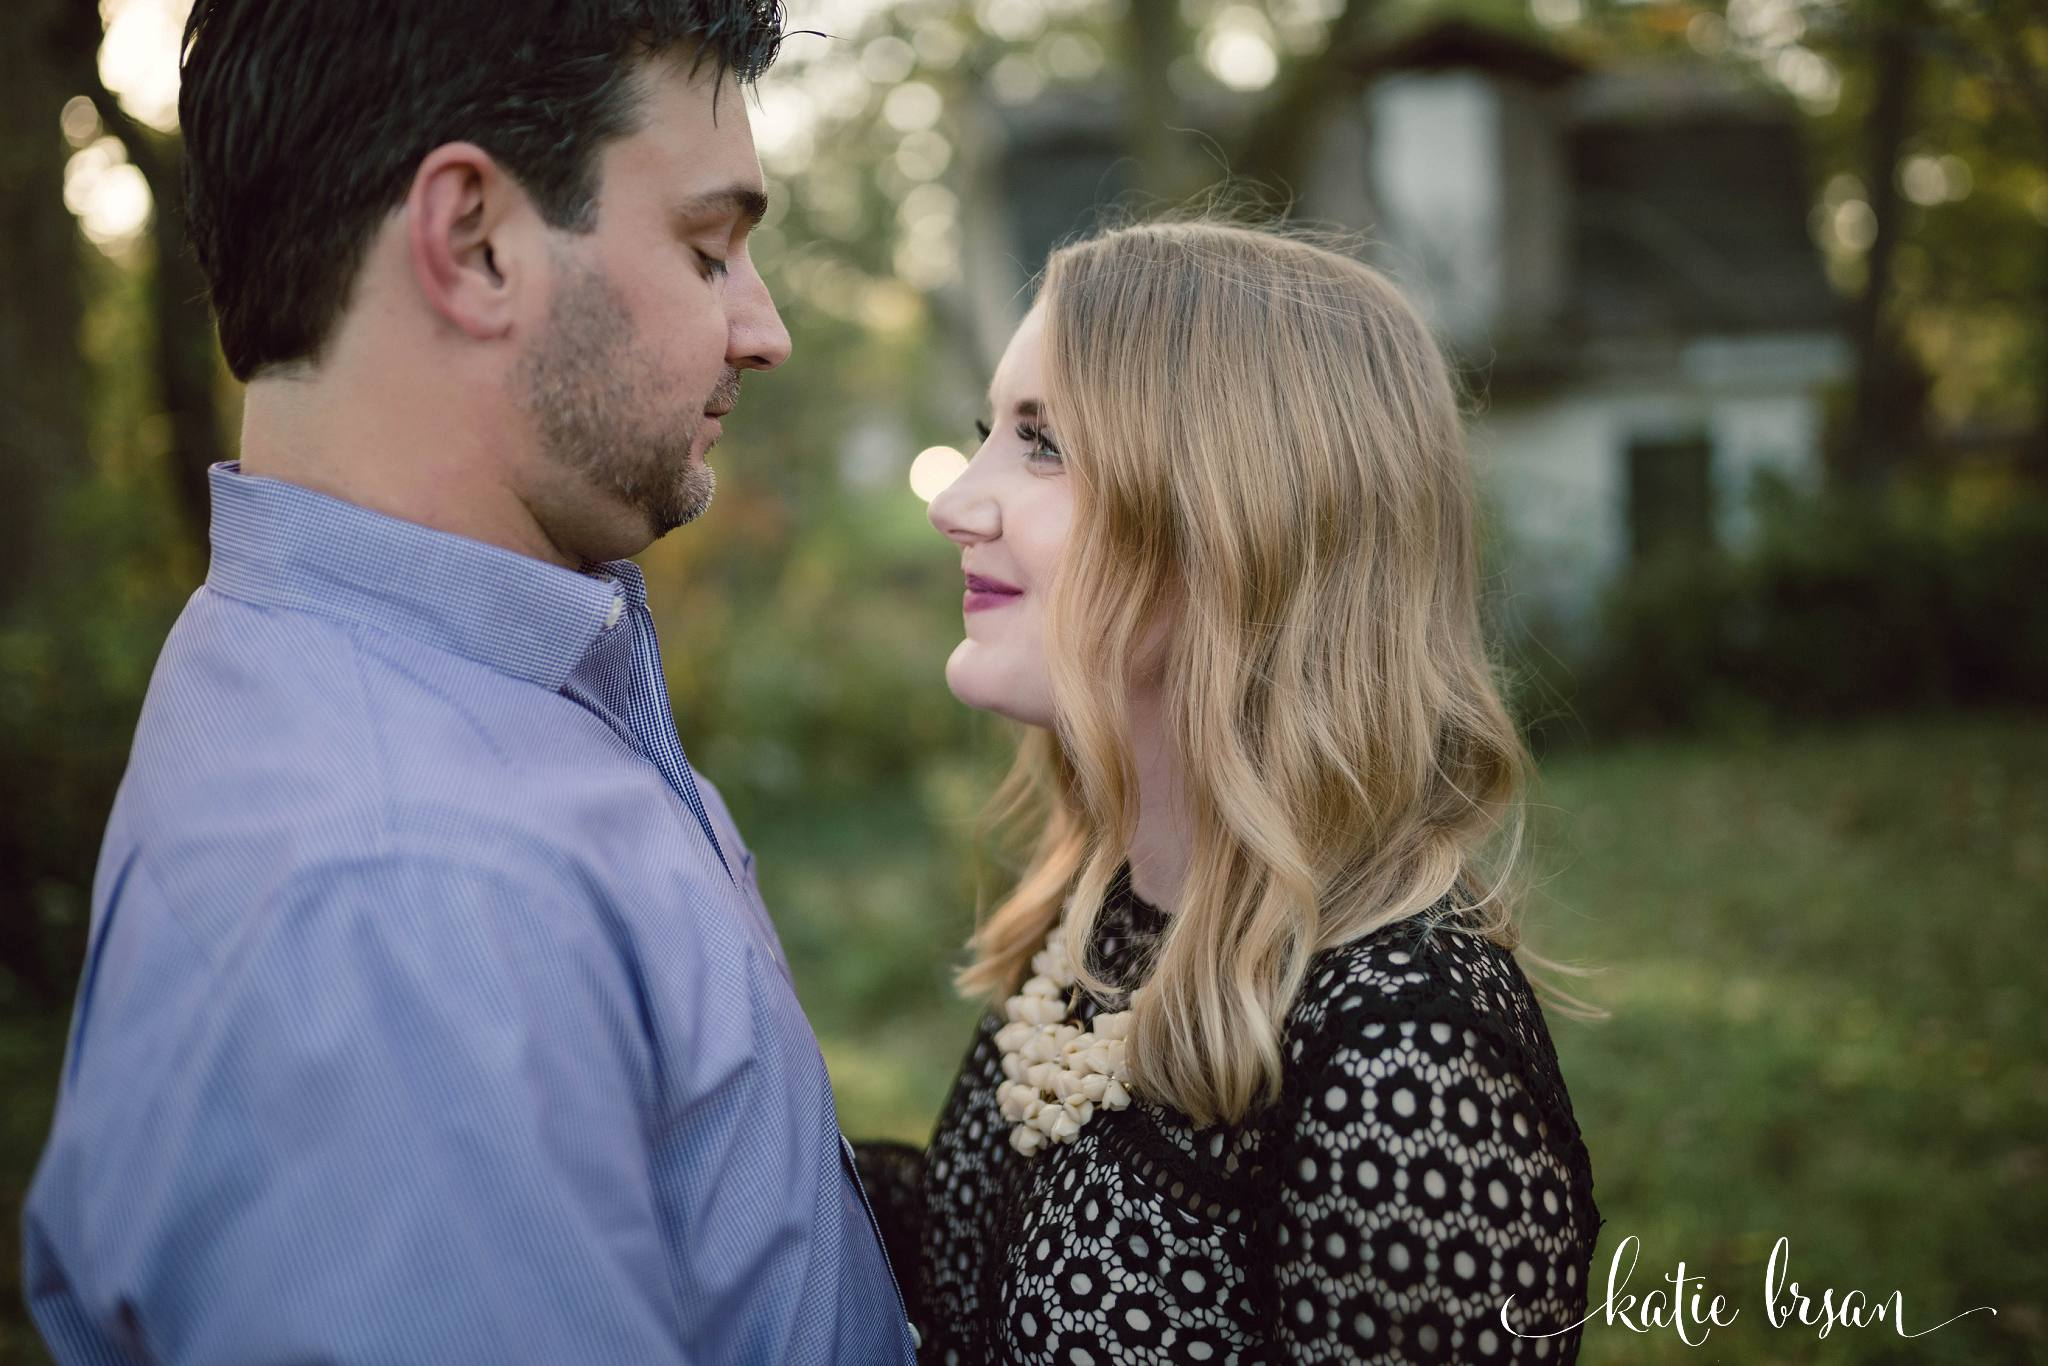 Mokena_EngagementSession_RuffledFeathers_Wedding_0945.jpg